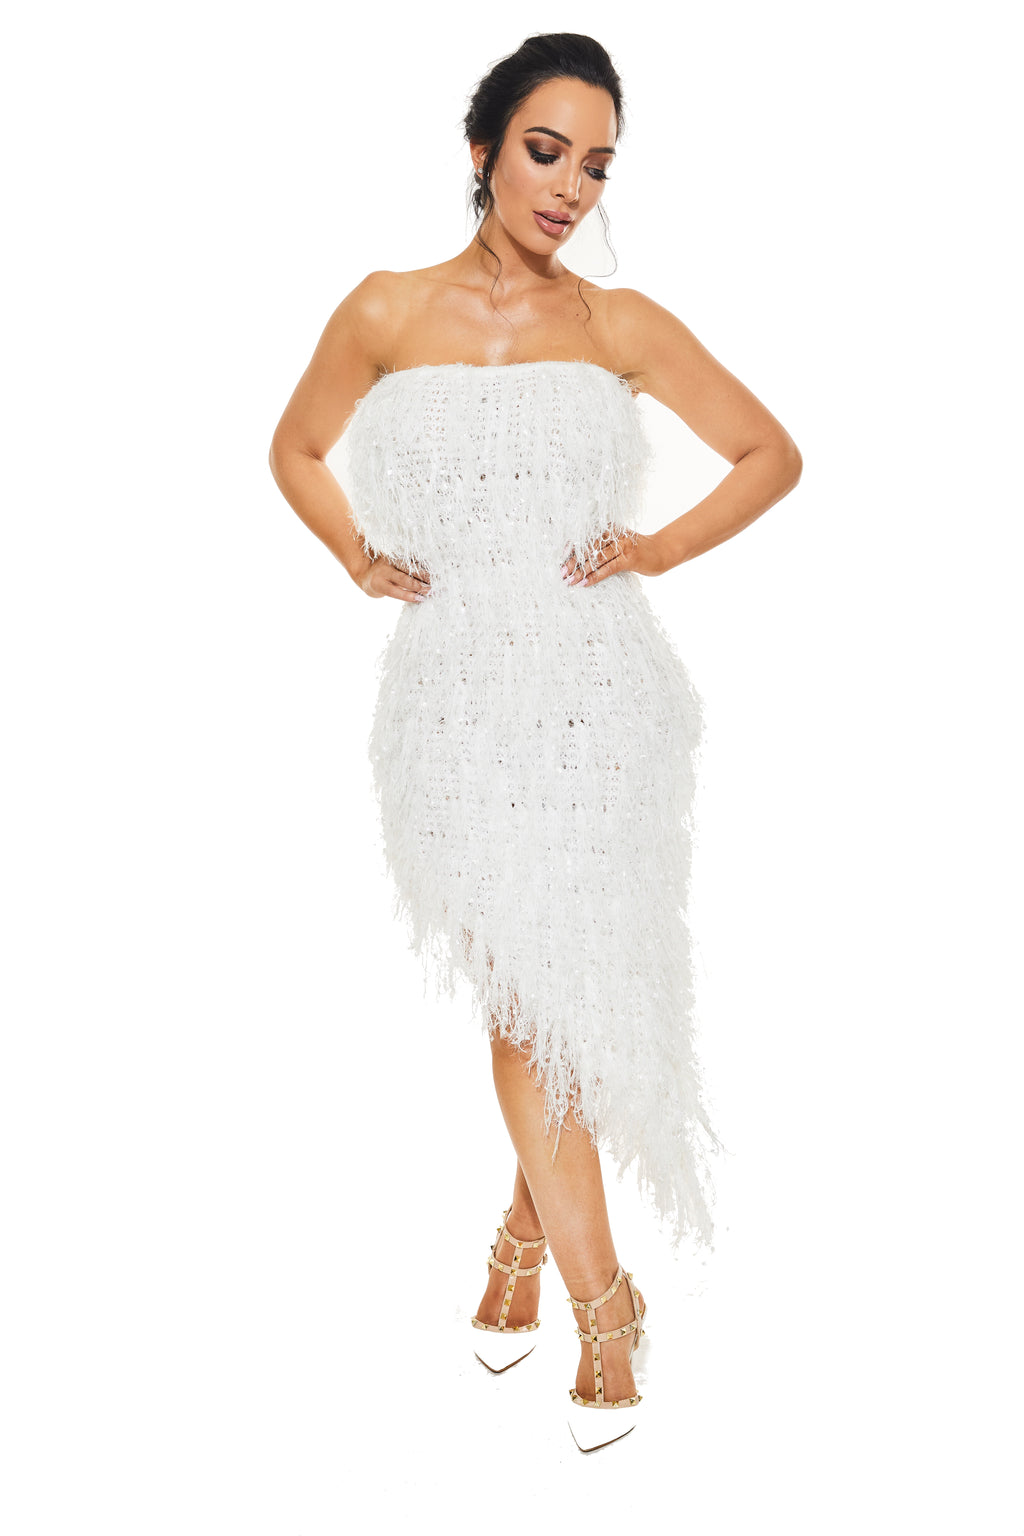 RIRI TUBE DRESS - Fluffy - www.prettyboutique.com